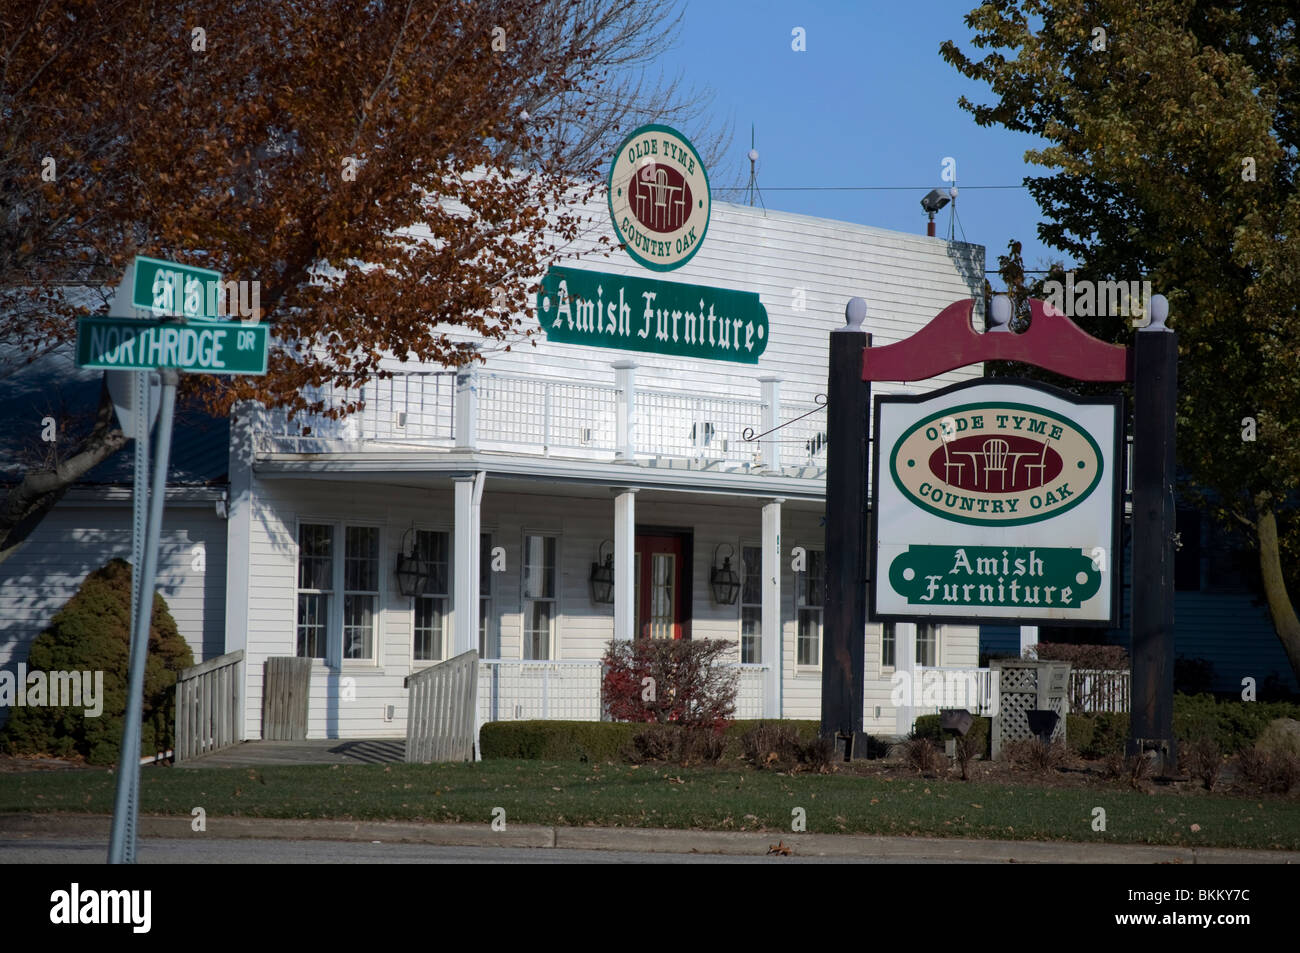 Old Tyme Country Oak Amish Furniture Store In Shipshewana Indiana